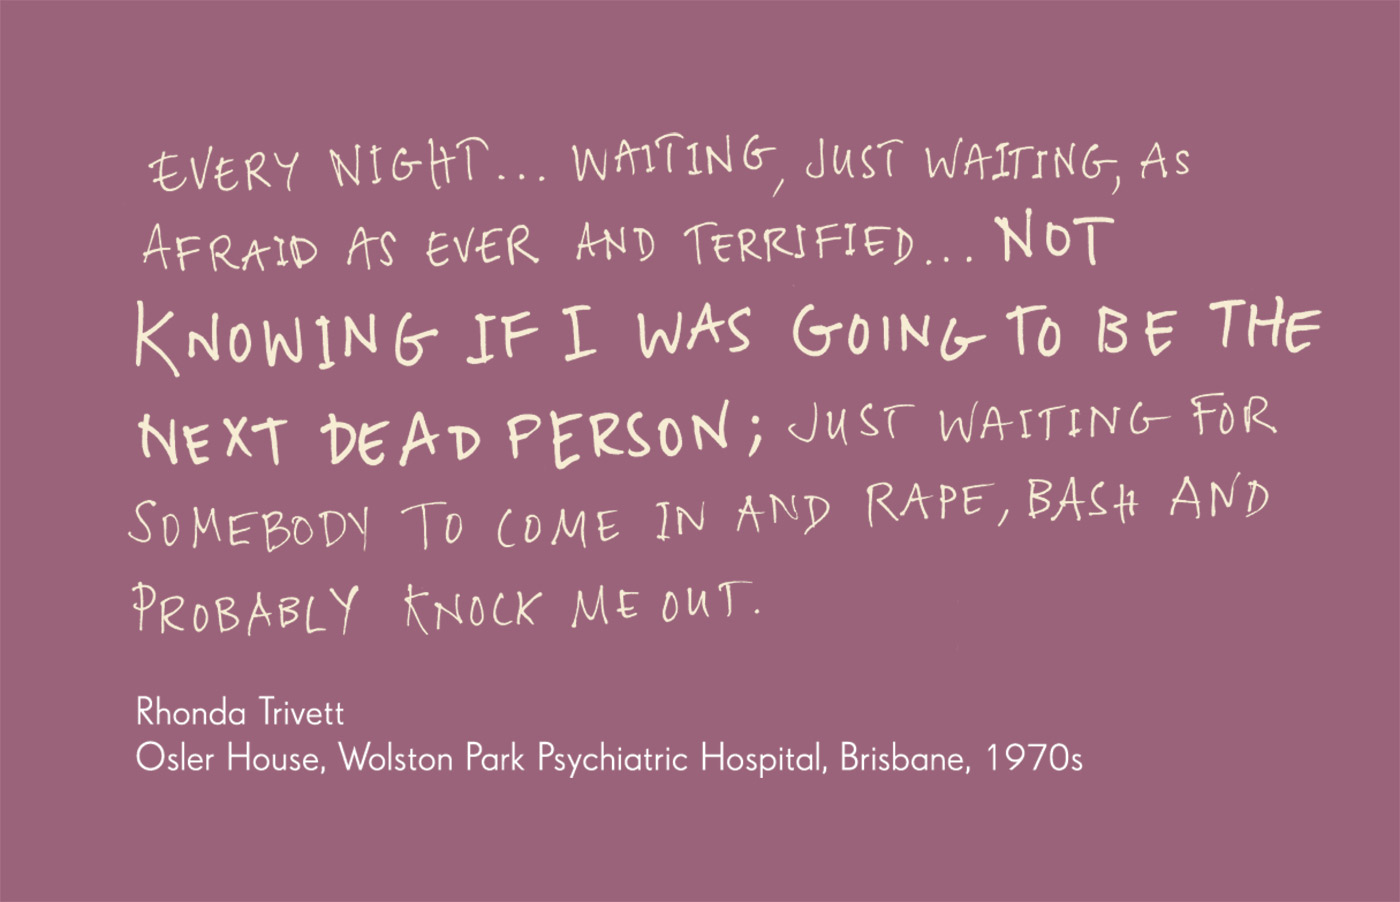 Exhibition graphic panel that reads: 'Every night ... waiting, just waiting, as afraid as ever and terrified ... not knowing if I was going to be the next dead person; just waiting for somebody to come in and rape, bash and probably knock me out.' attributed to 'Rhonda Trivett, Osler House, Wolston Park Psychiatric Hospital, Queensland, 1970s'. At right is a Polaroid photograph framed by a door, looking through to a low wooden bed base and a barred window. Typed text below reads 'The room Rhonda Trivett occupied as a teenager at Osler House, the locked adult female psychiatric ward of Wolston Park Psychiatric Hospital, Brisbane, 2008'. - click to view larger image